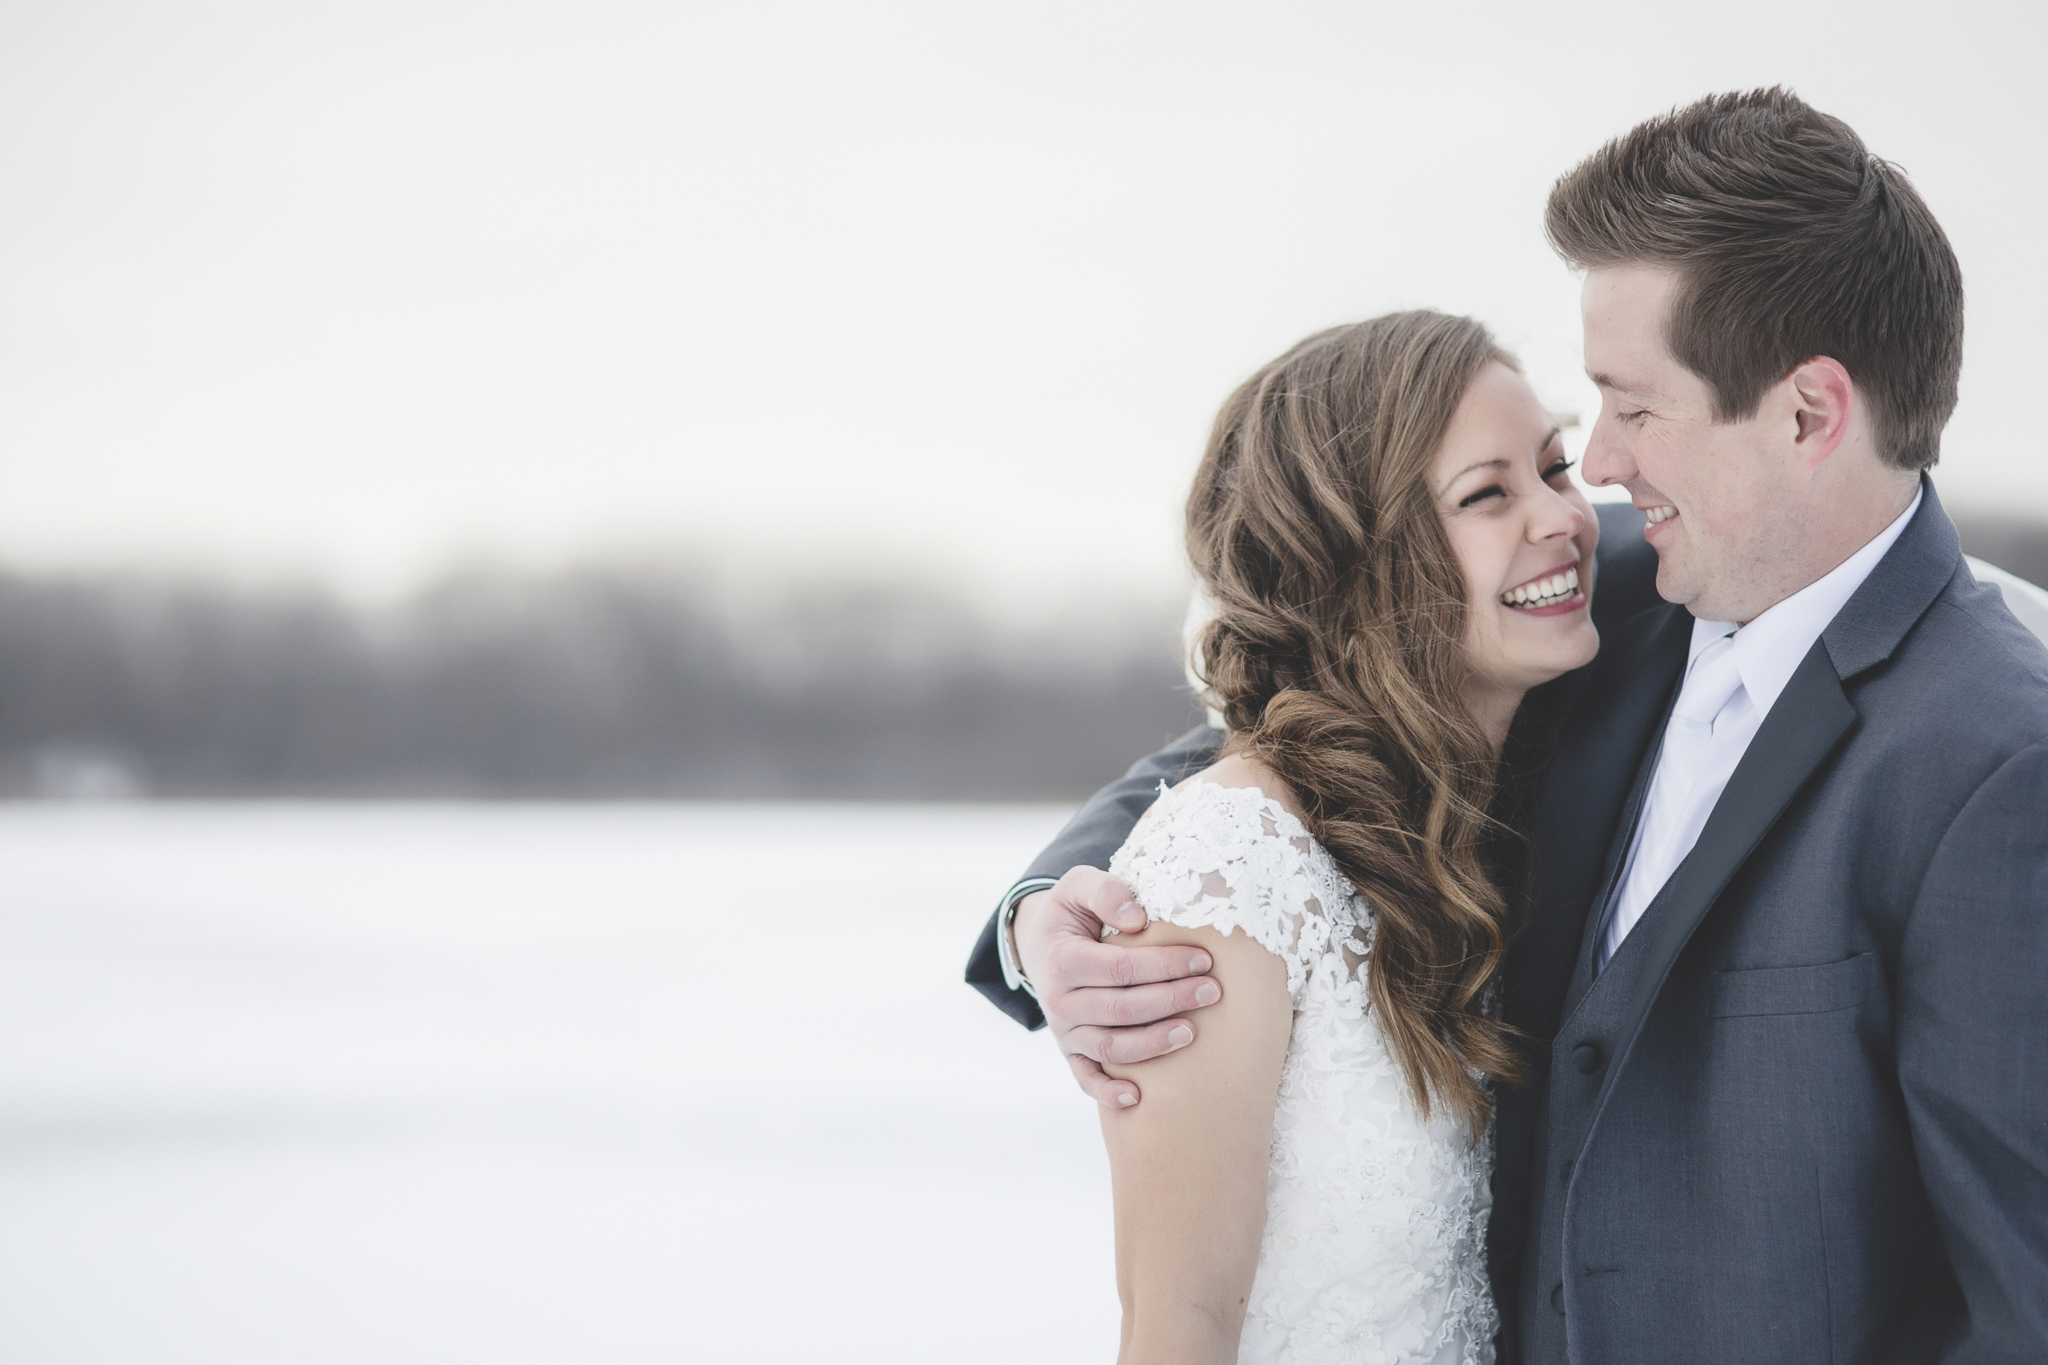 minneapolis winter wedding photography-25.jpg